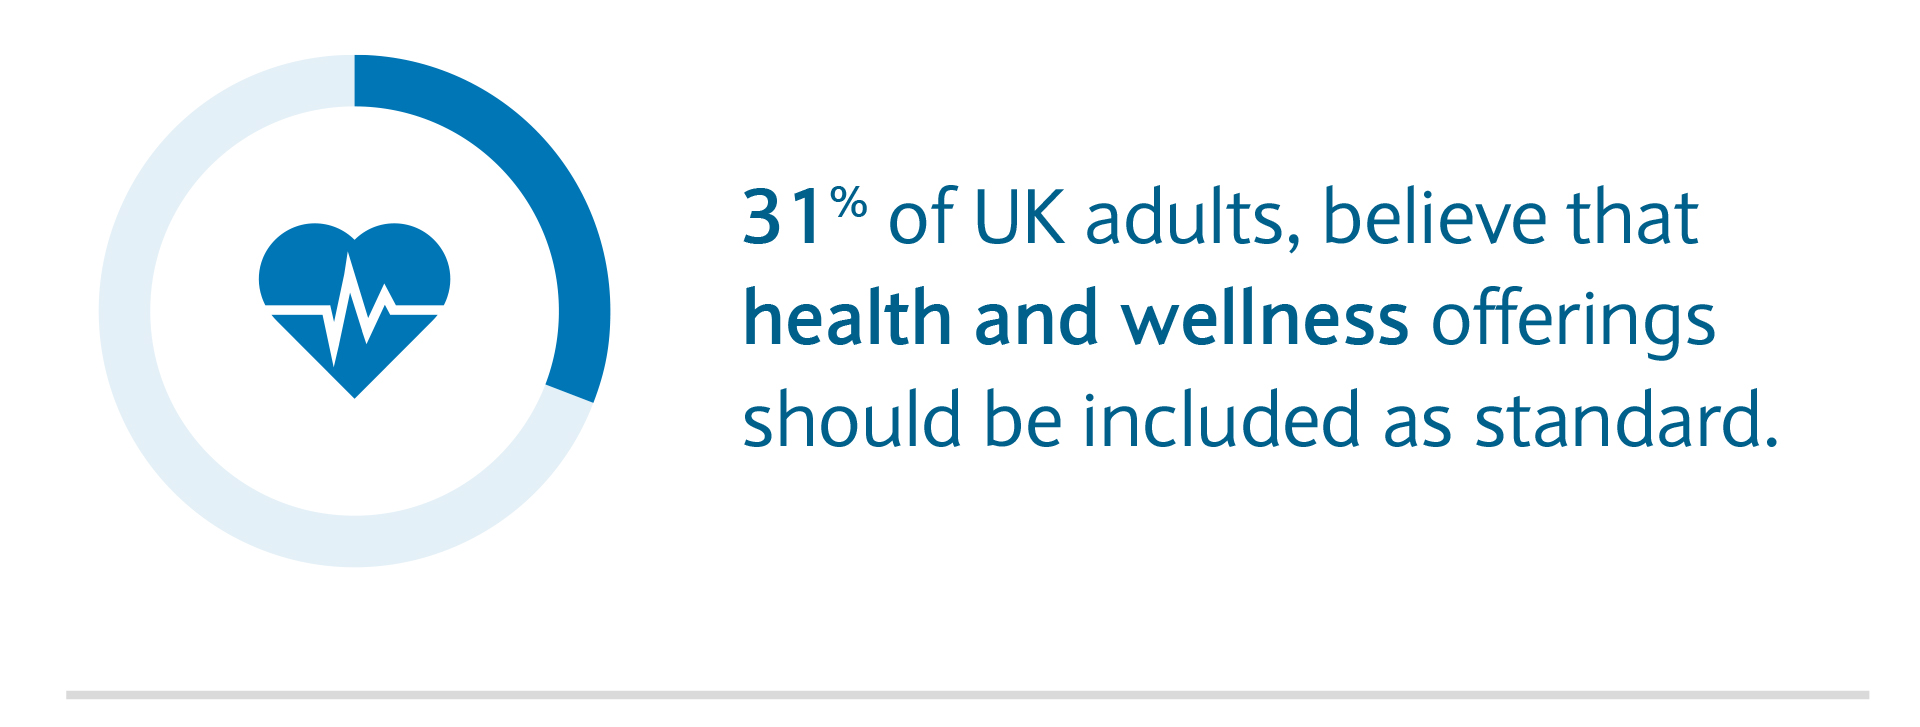 31% or UK adults believe that health and wellness offerings should be included as standard.